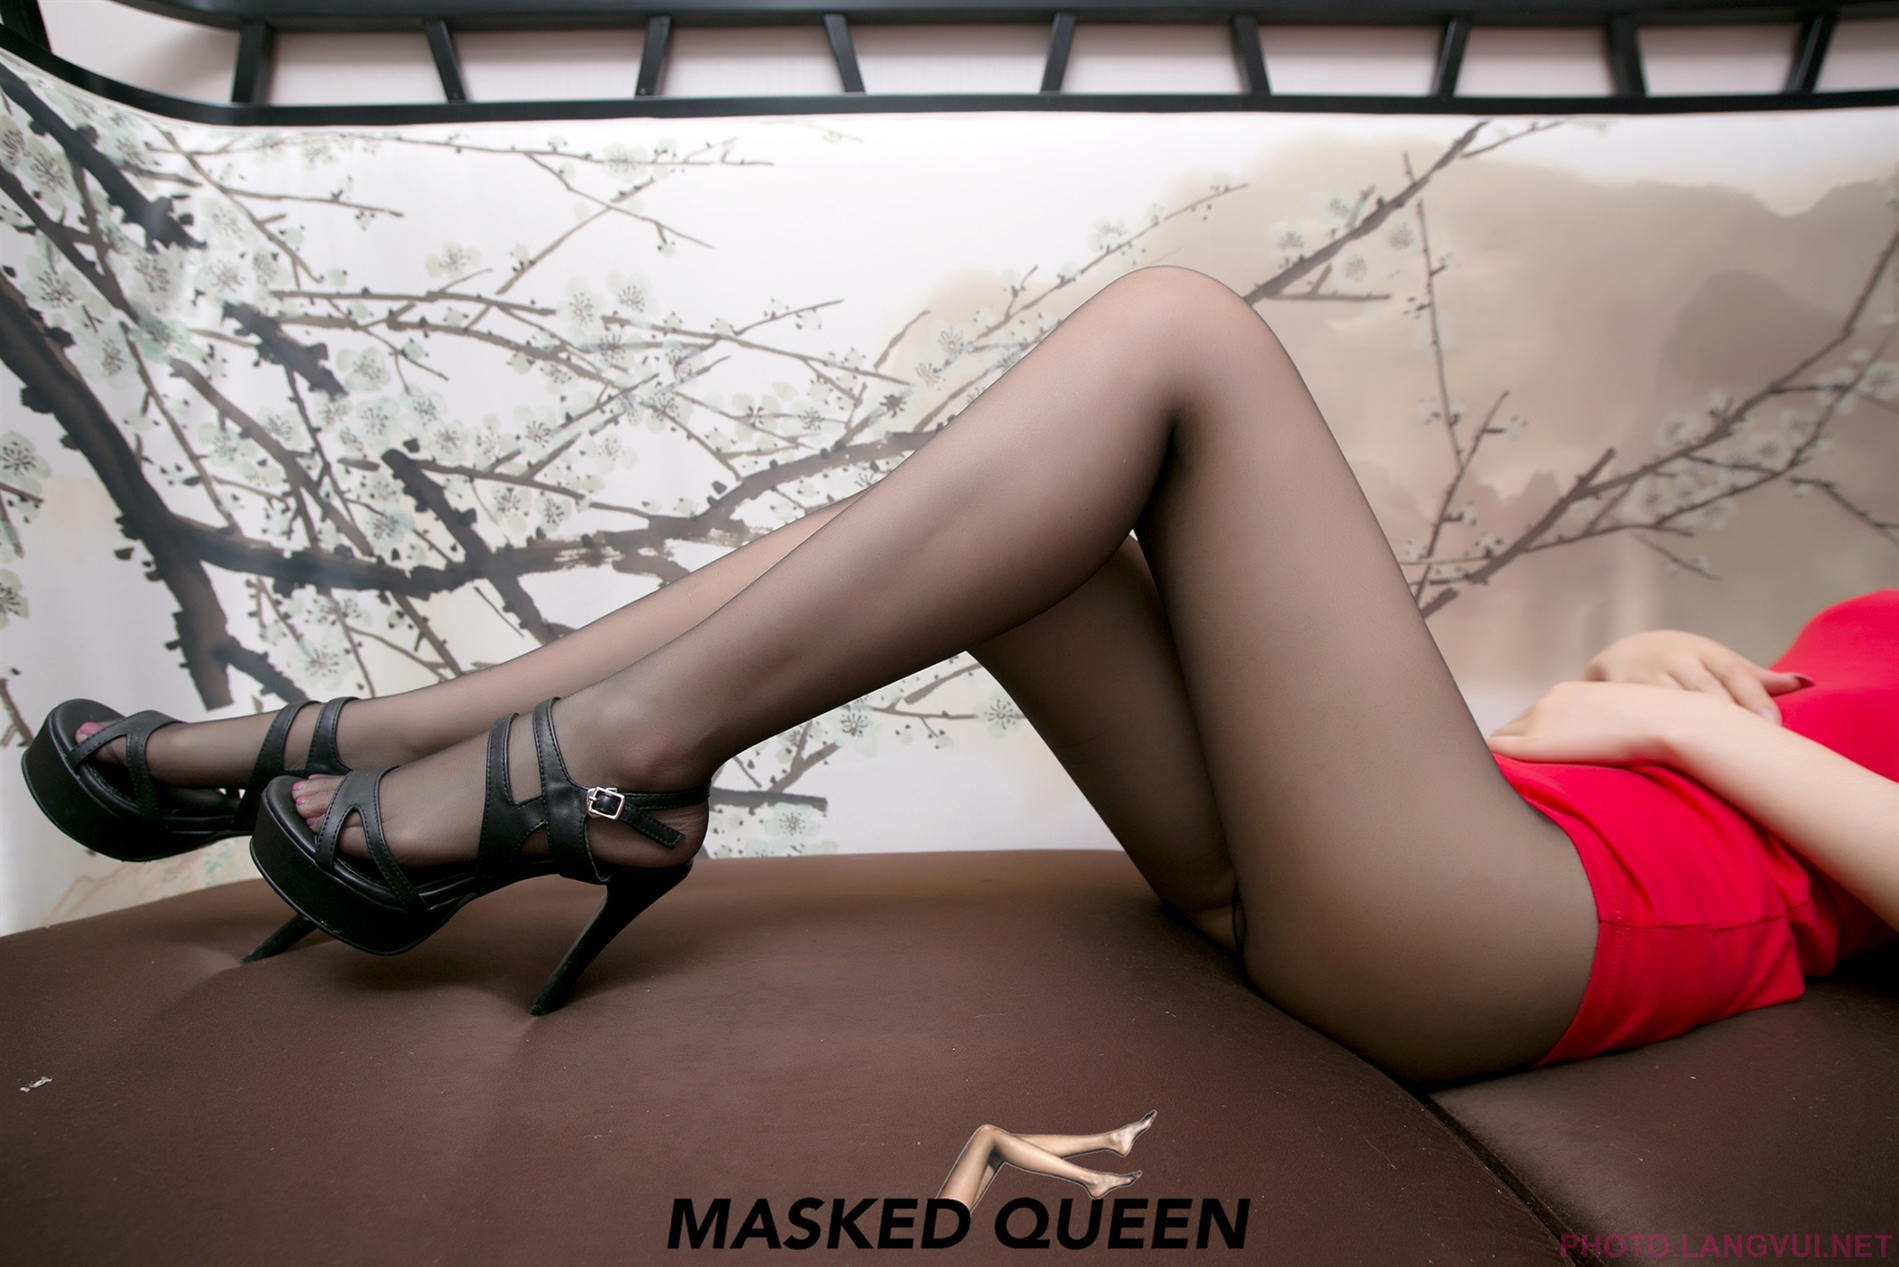 MASKED QUEEN No 019